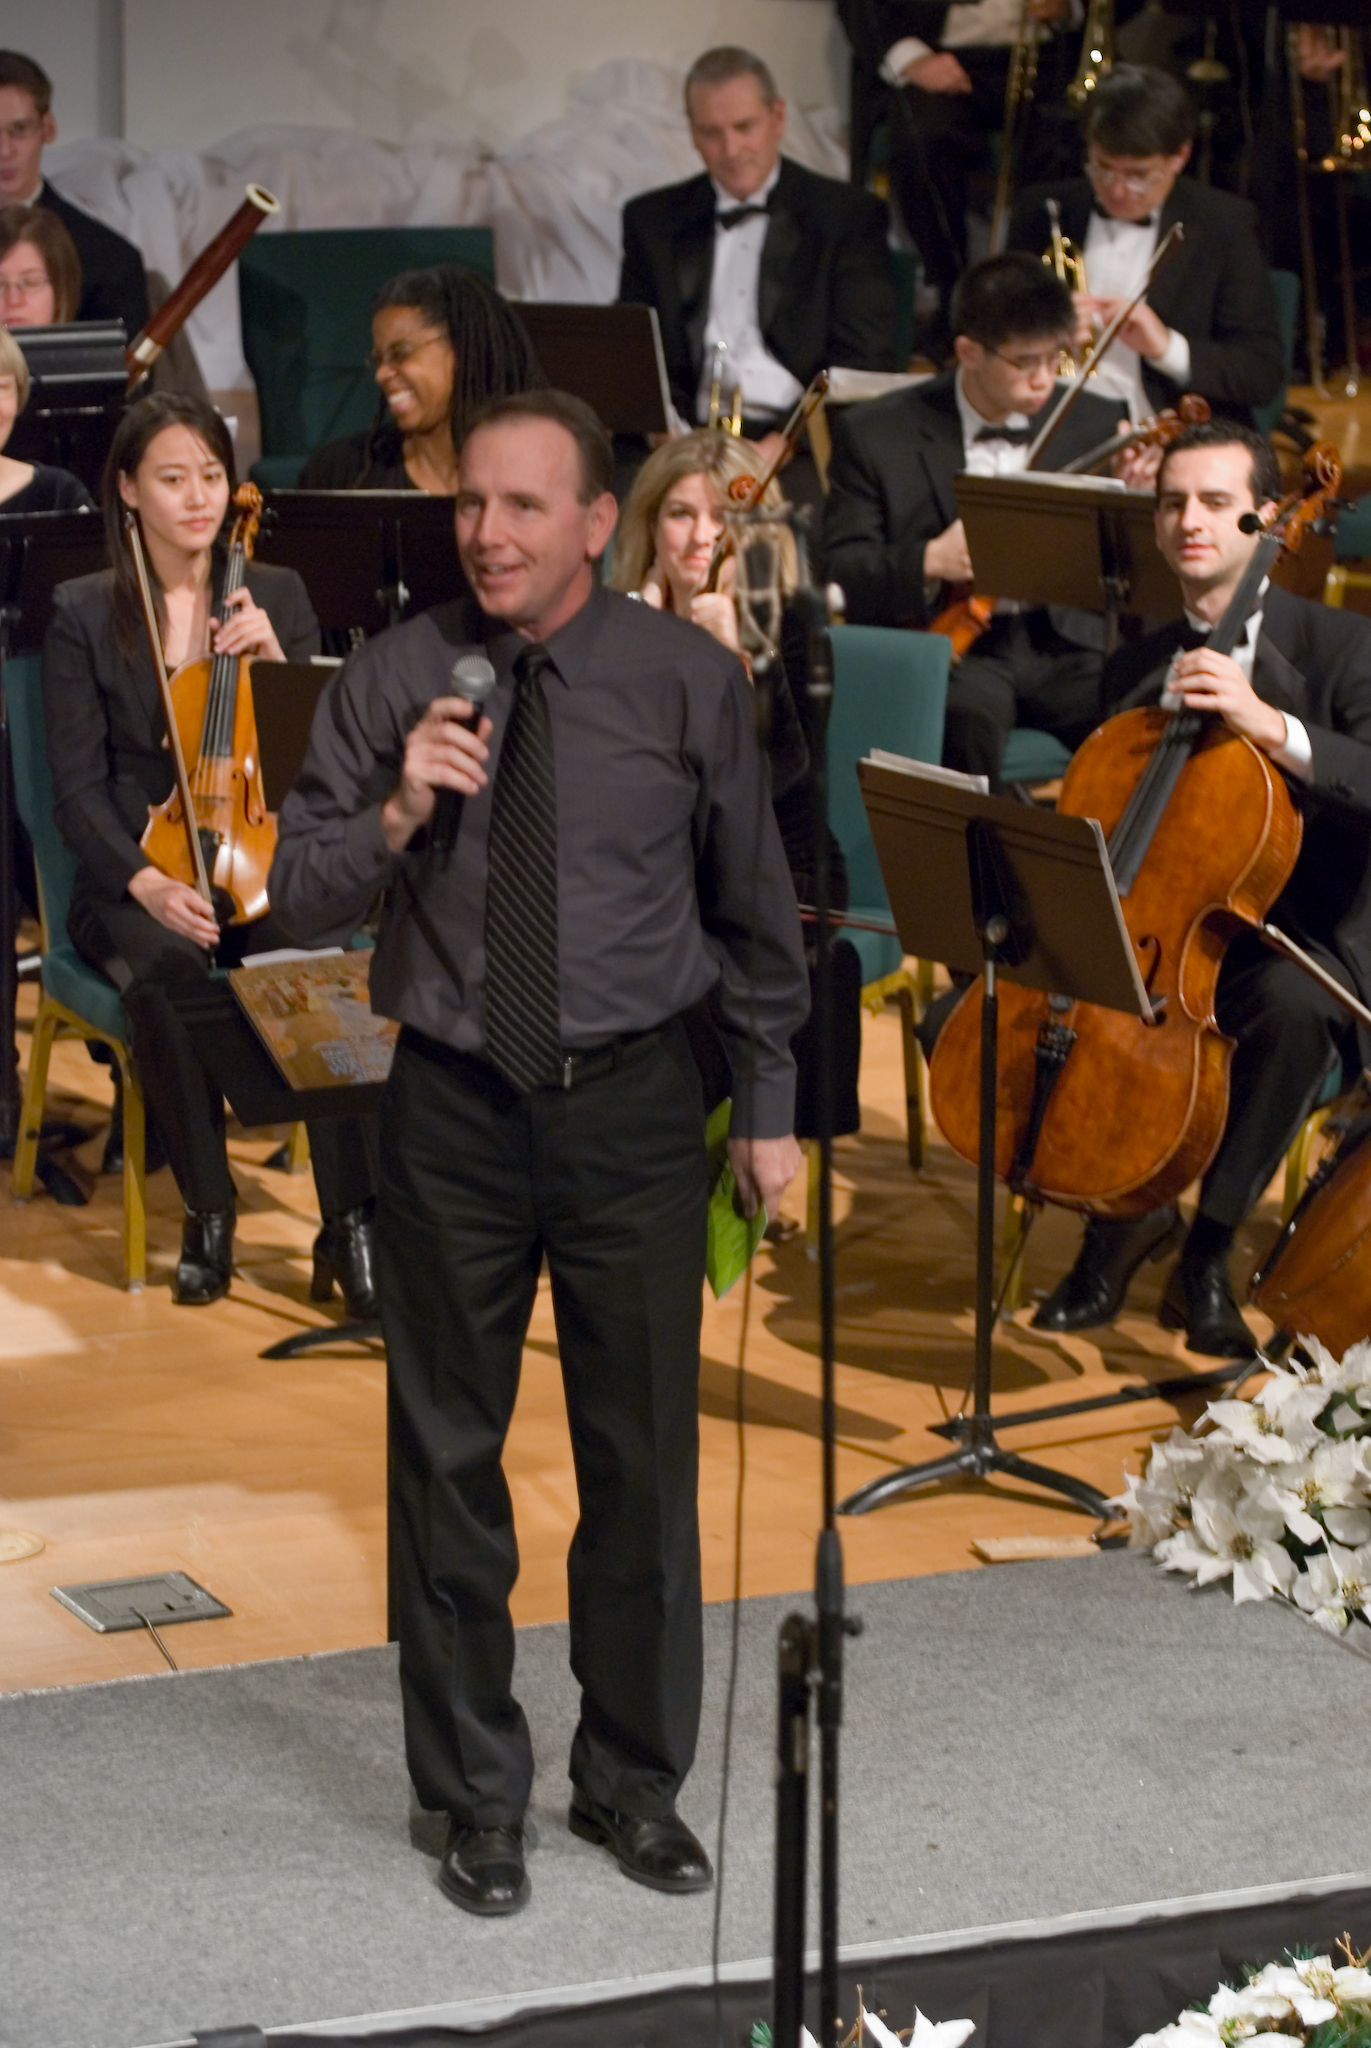 Pastor Boyd Hannoldintroducing the Orchestra